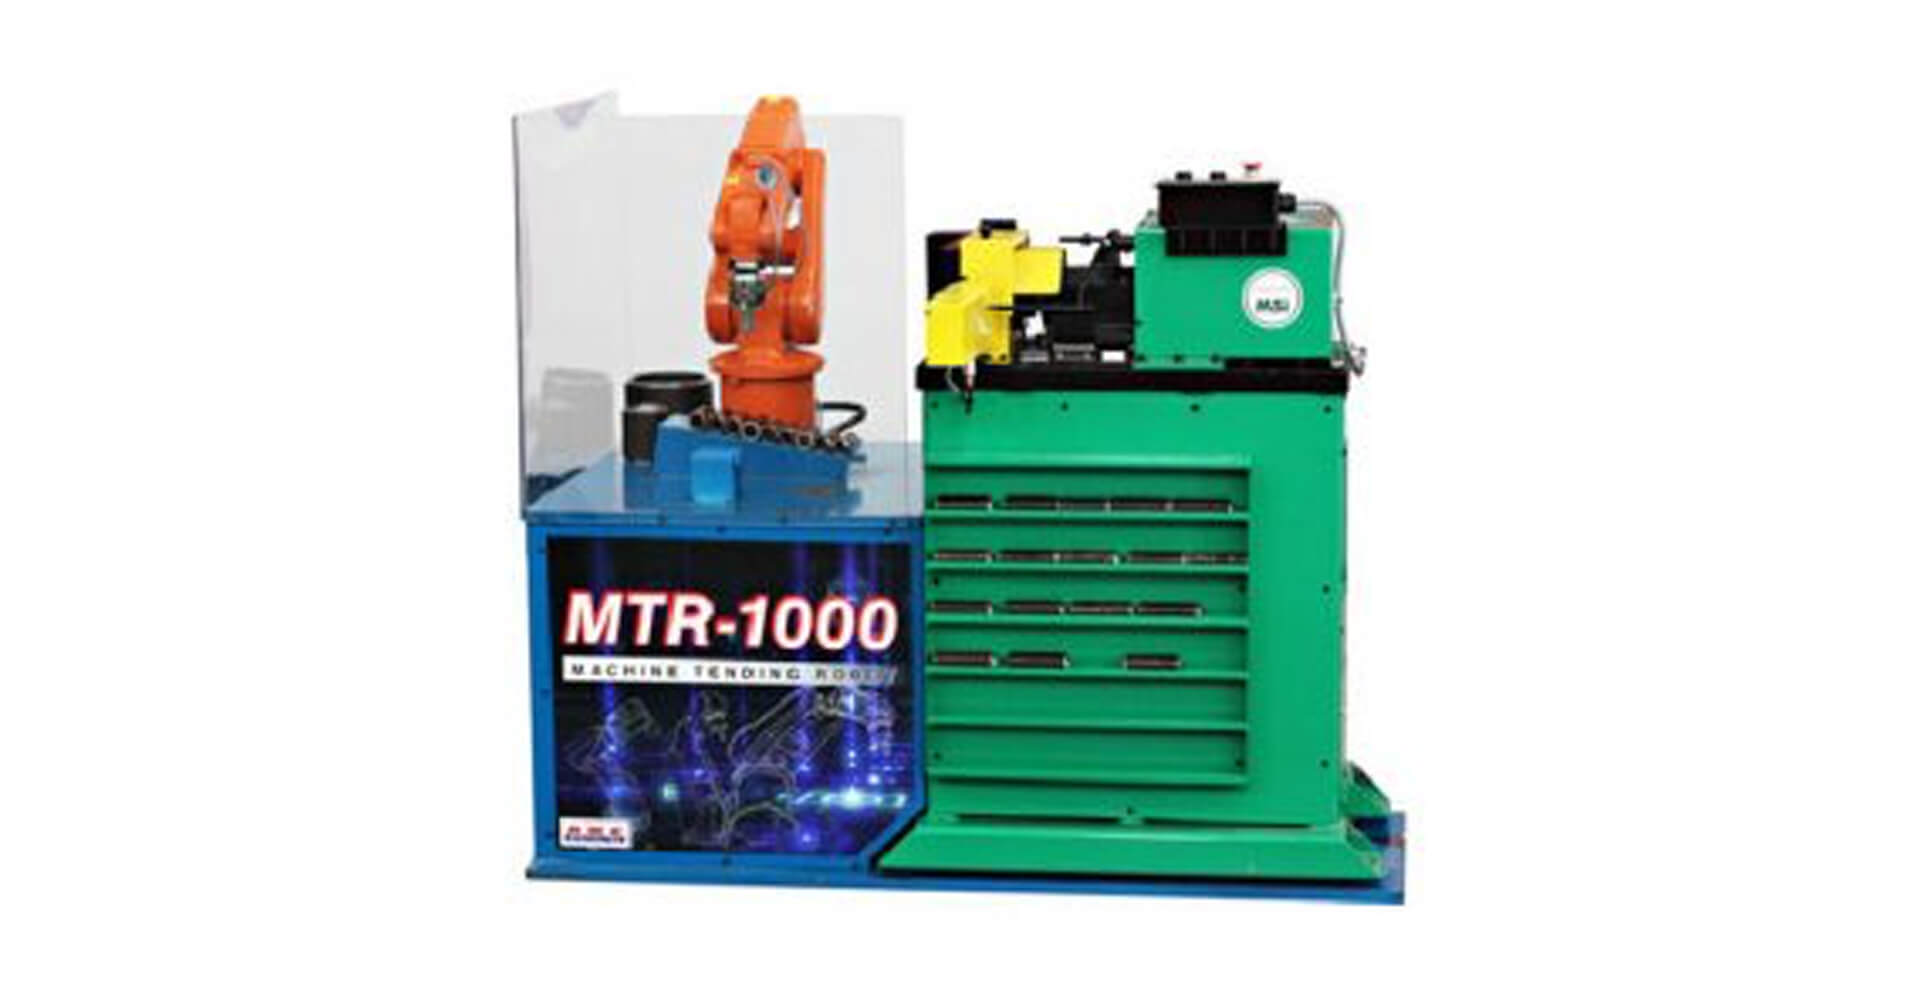 MTR-1000 Machine Tending Robot